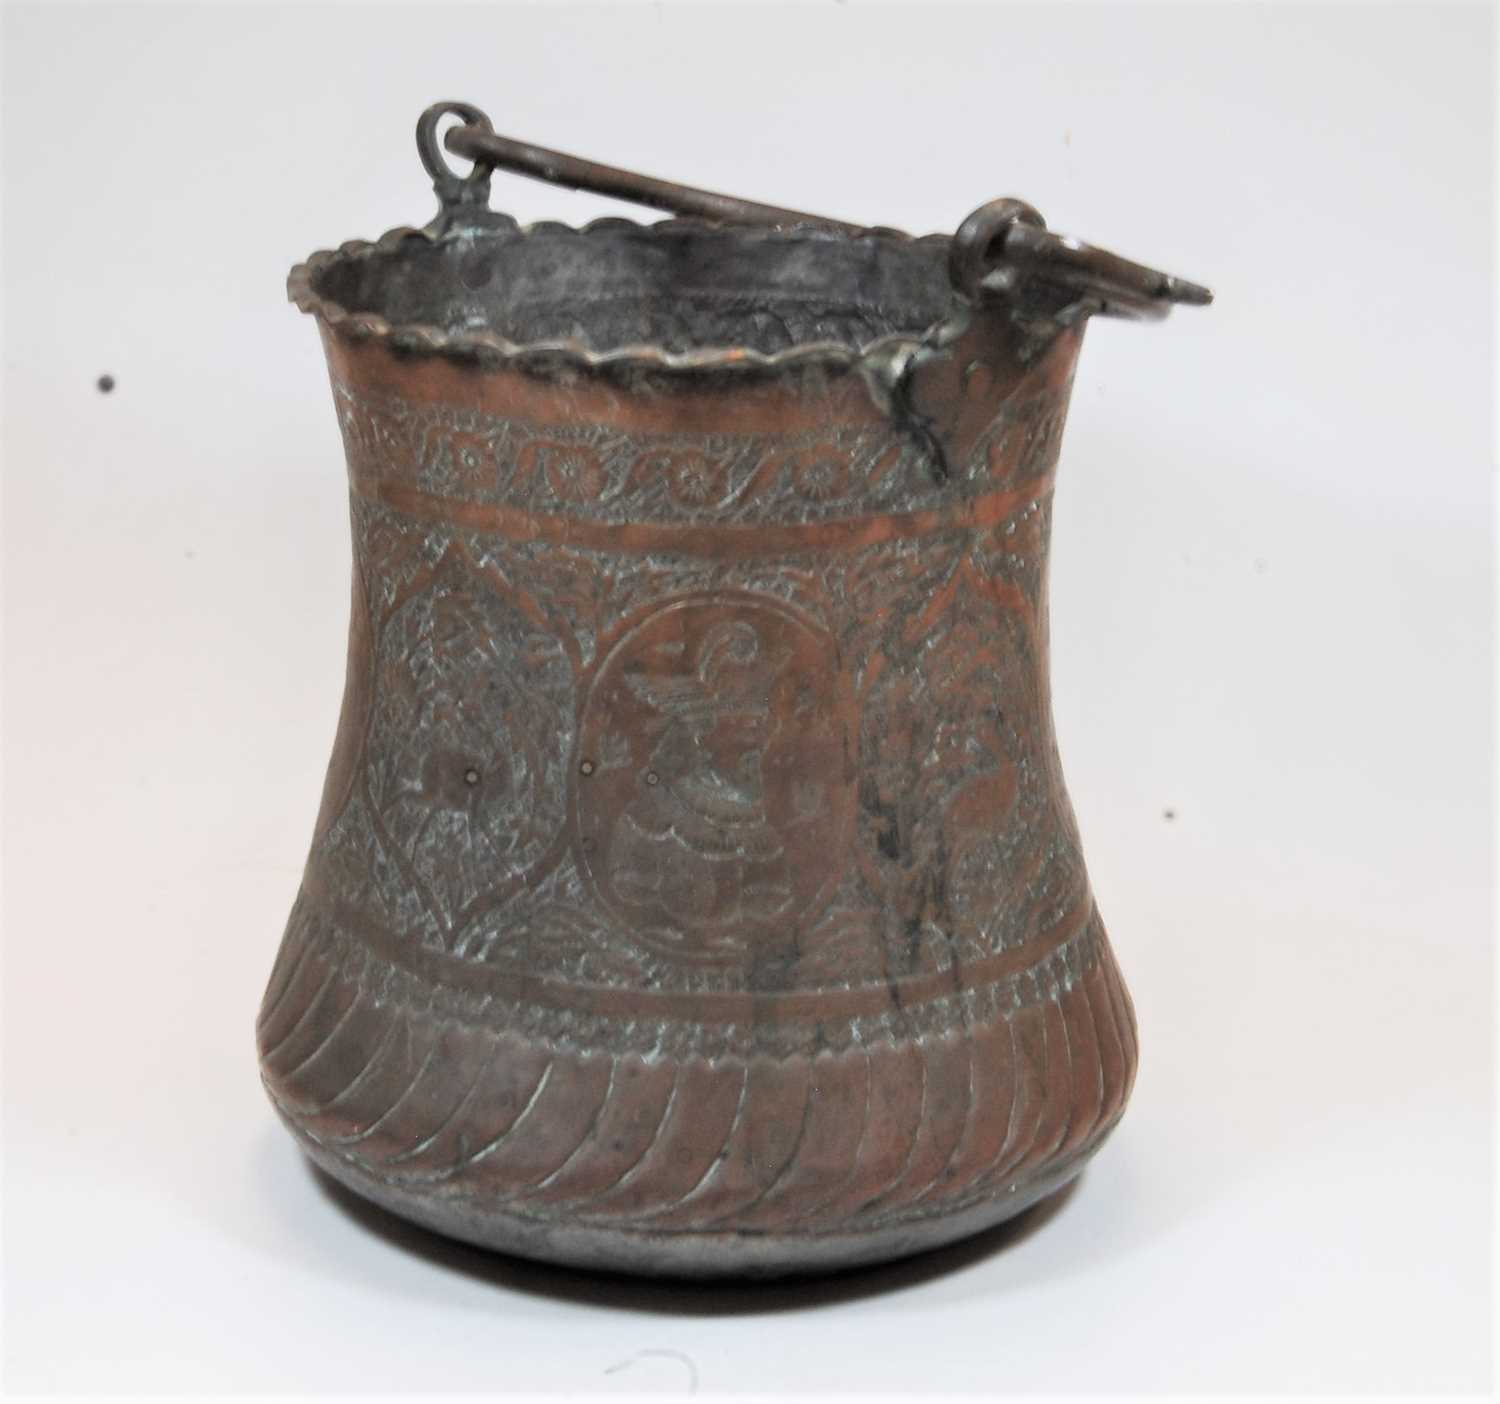 Lot 6 - A late 19th century Persian copper bucket, of waisted cylindrical form, the body relief decorated